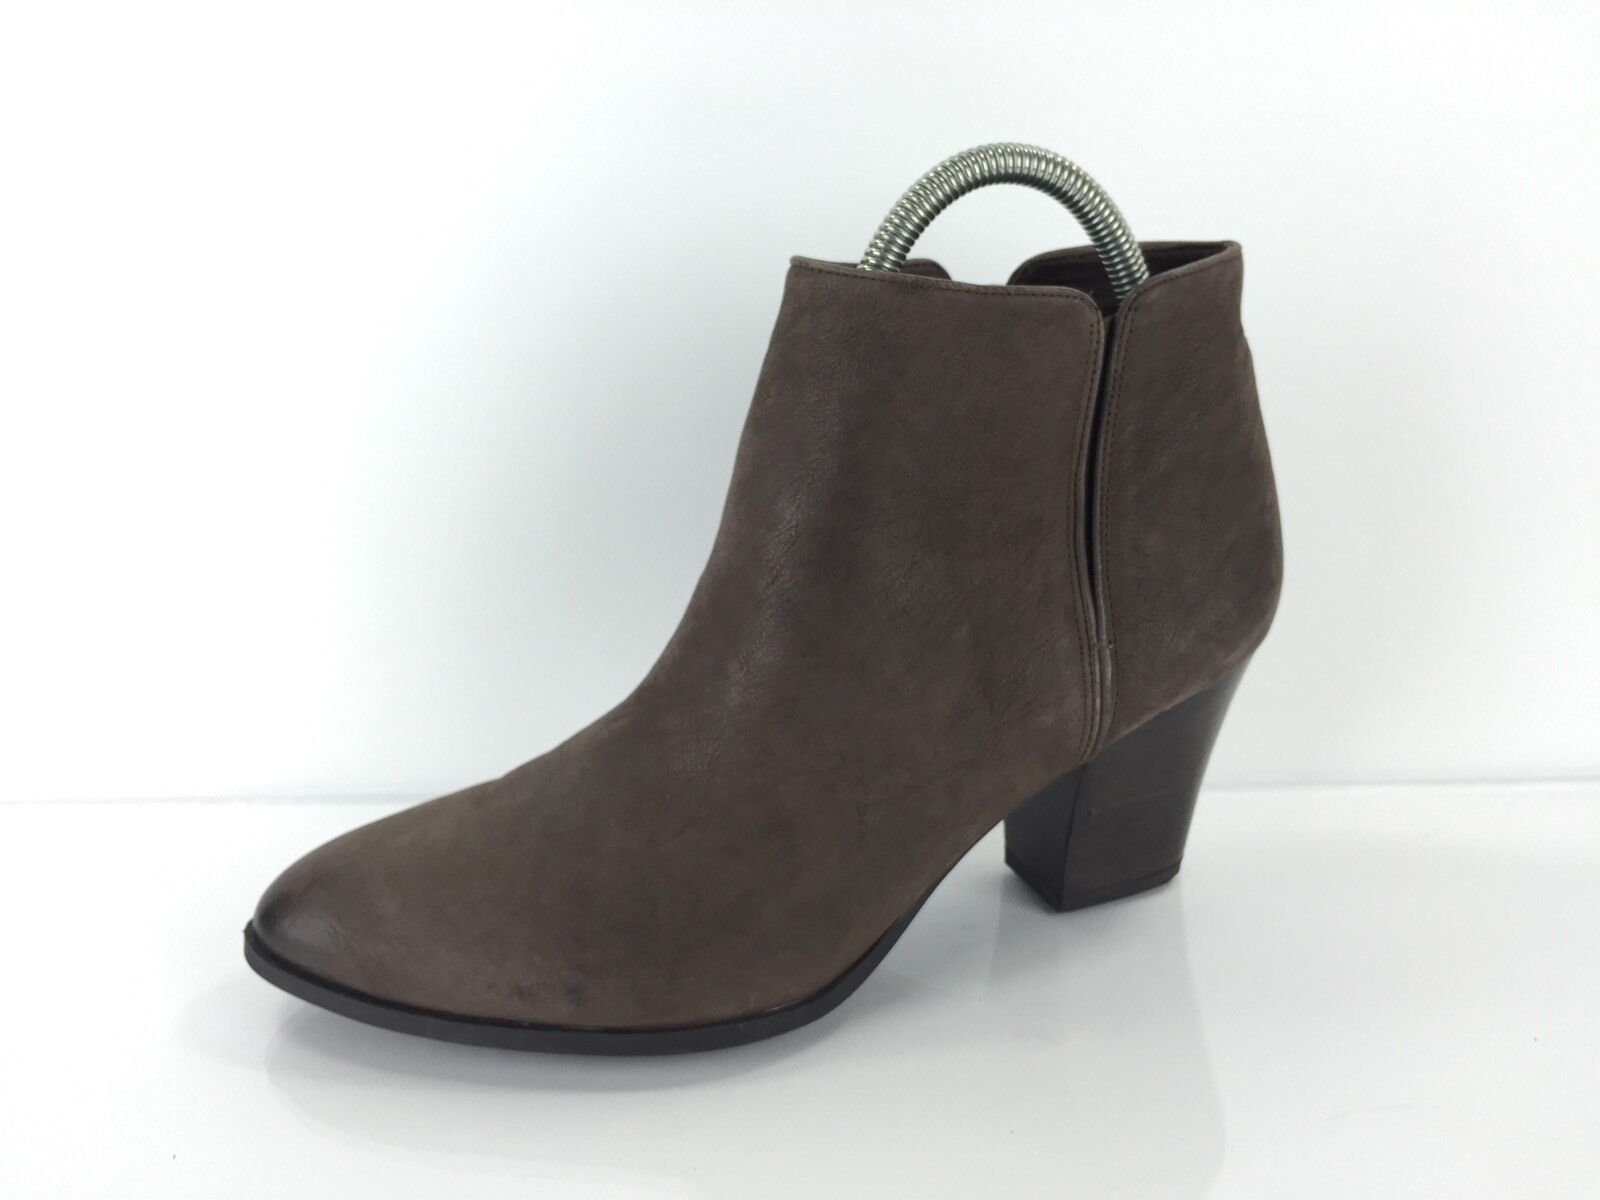 Franco Sarto Women's Dark Brown Leather Ankle Boots 11 M